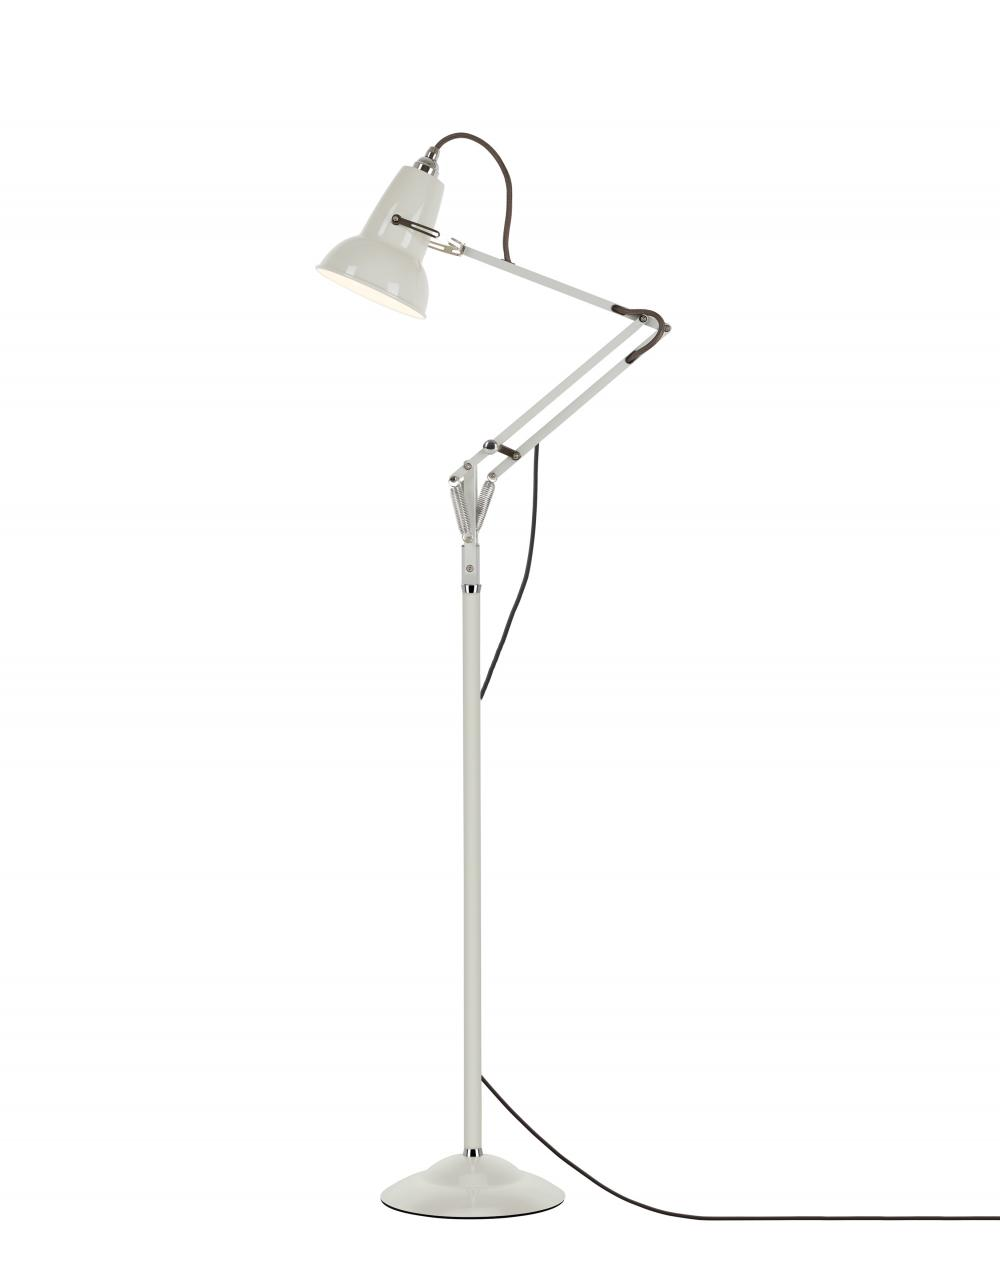 Anglepoise Type 1227 Floor Lamp